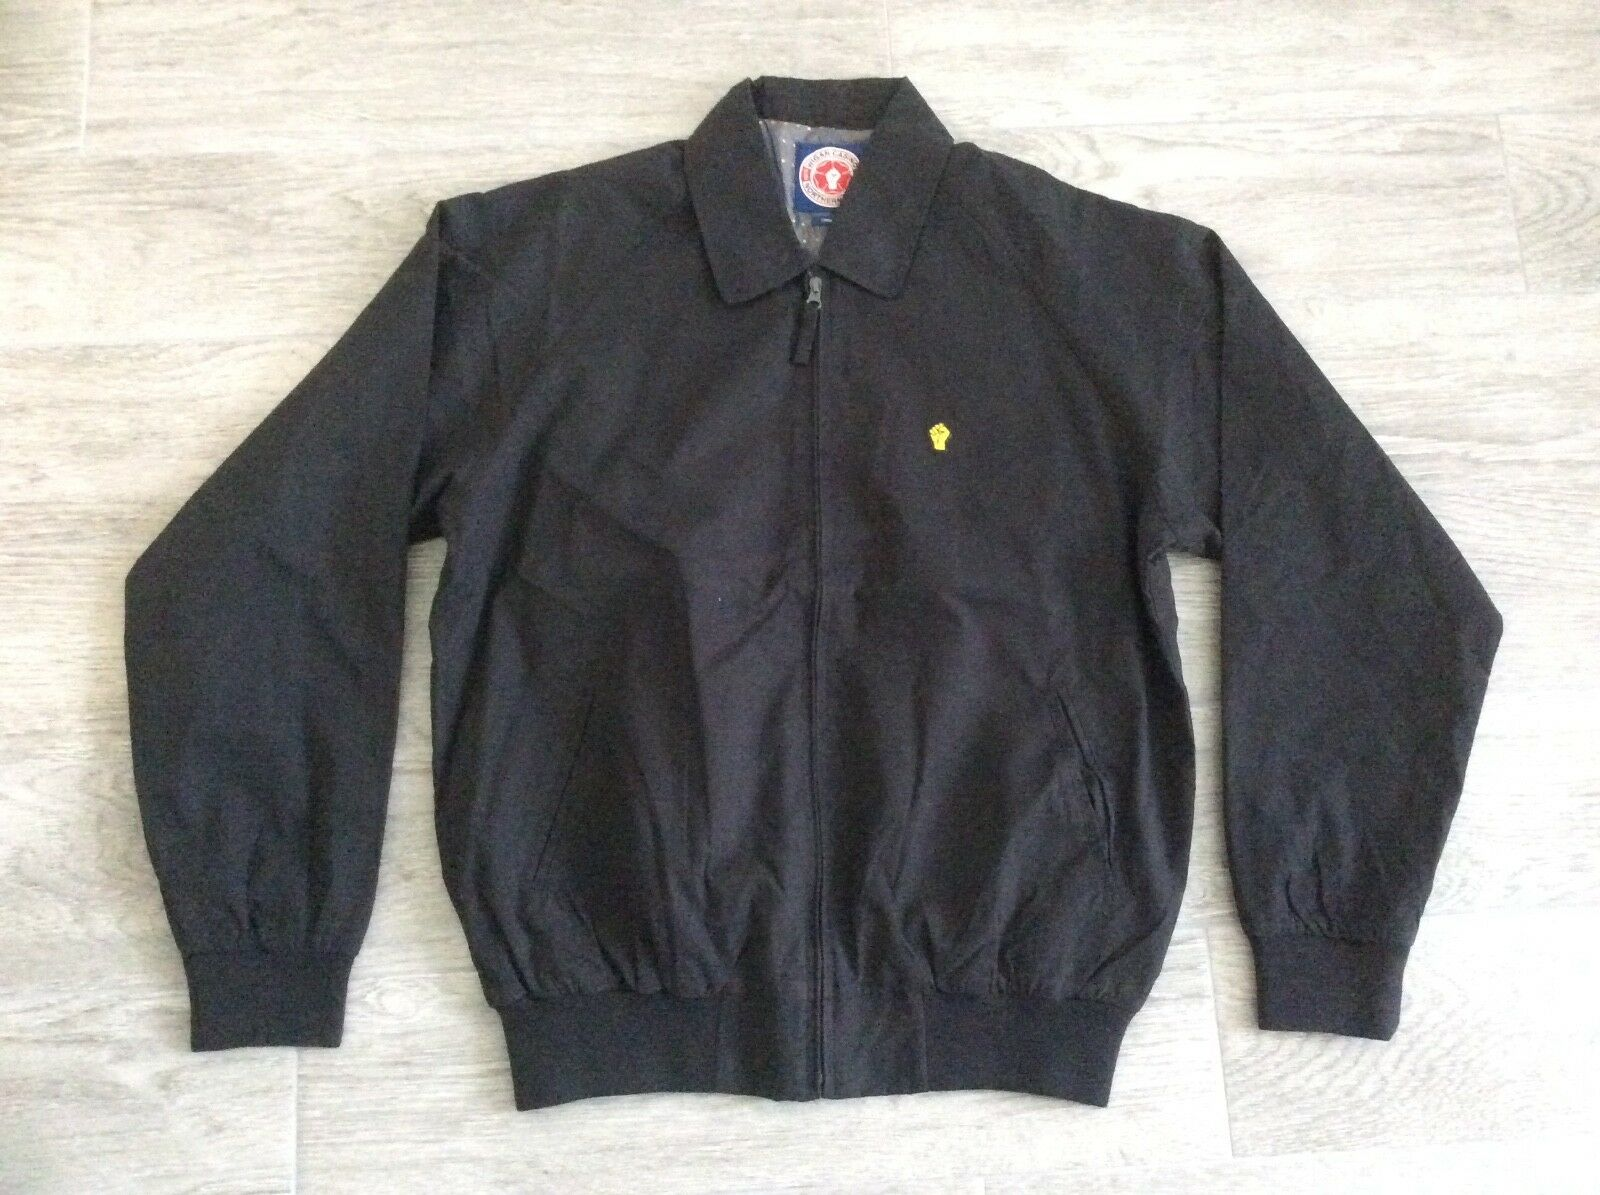 Noir Casino northern Soul Taille harrington Veste Wigan L Bomber Homme xP0qTw1pn